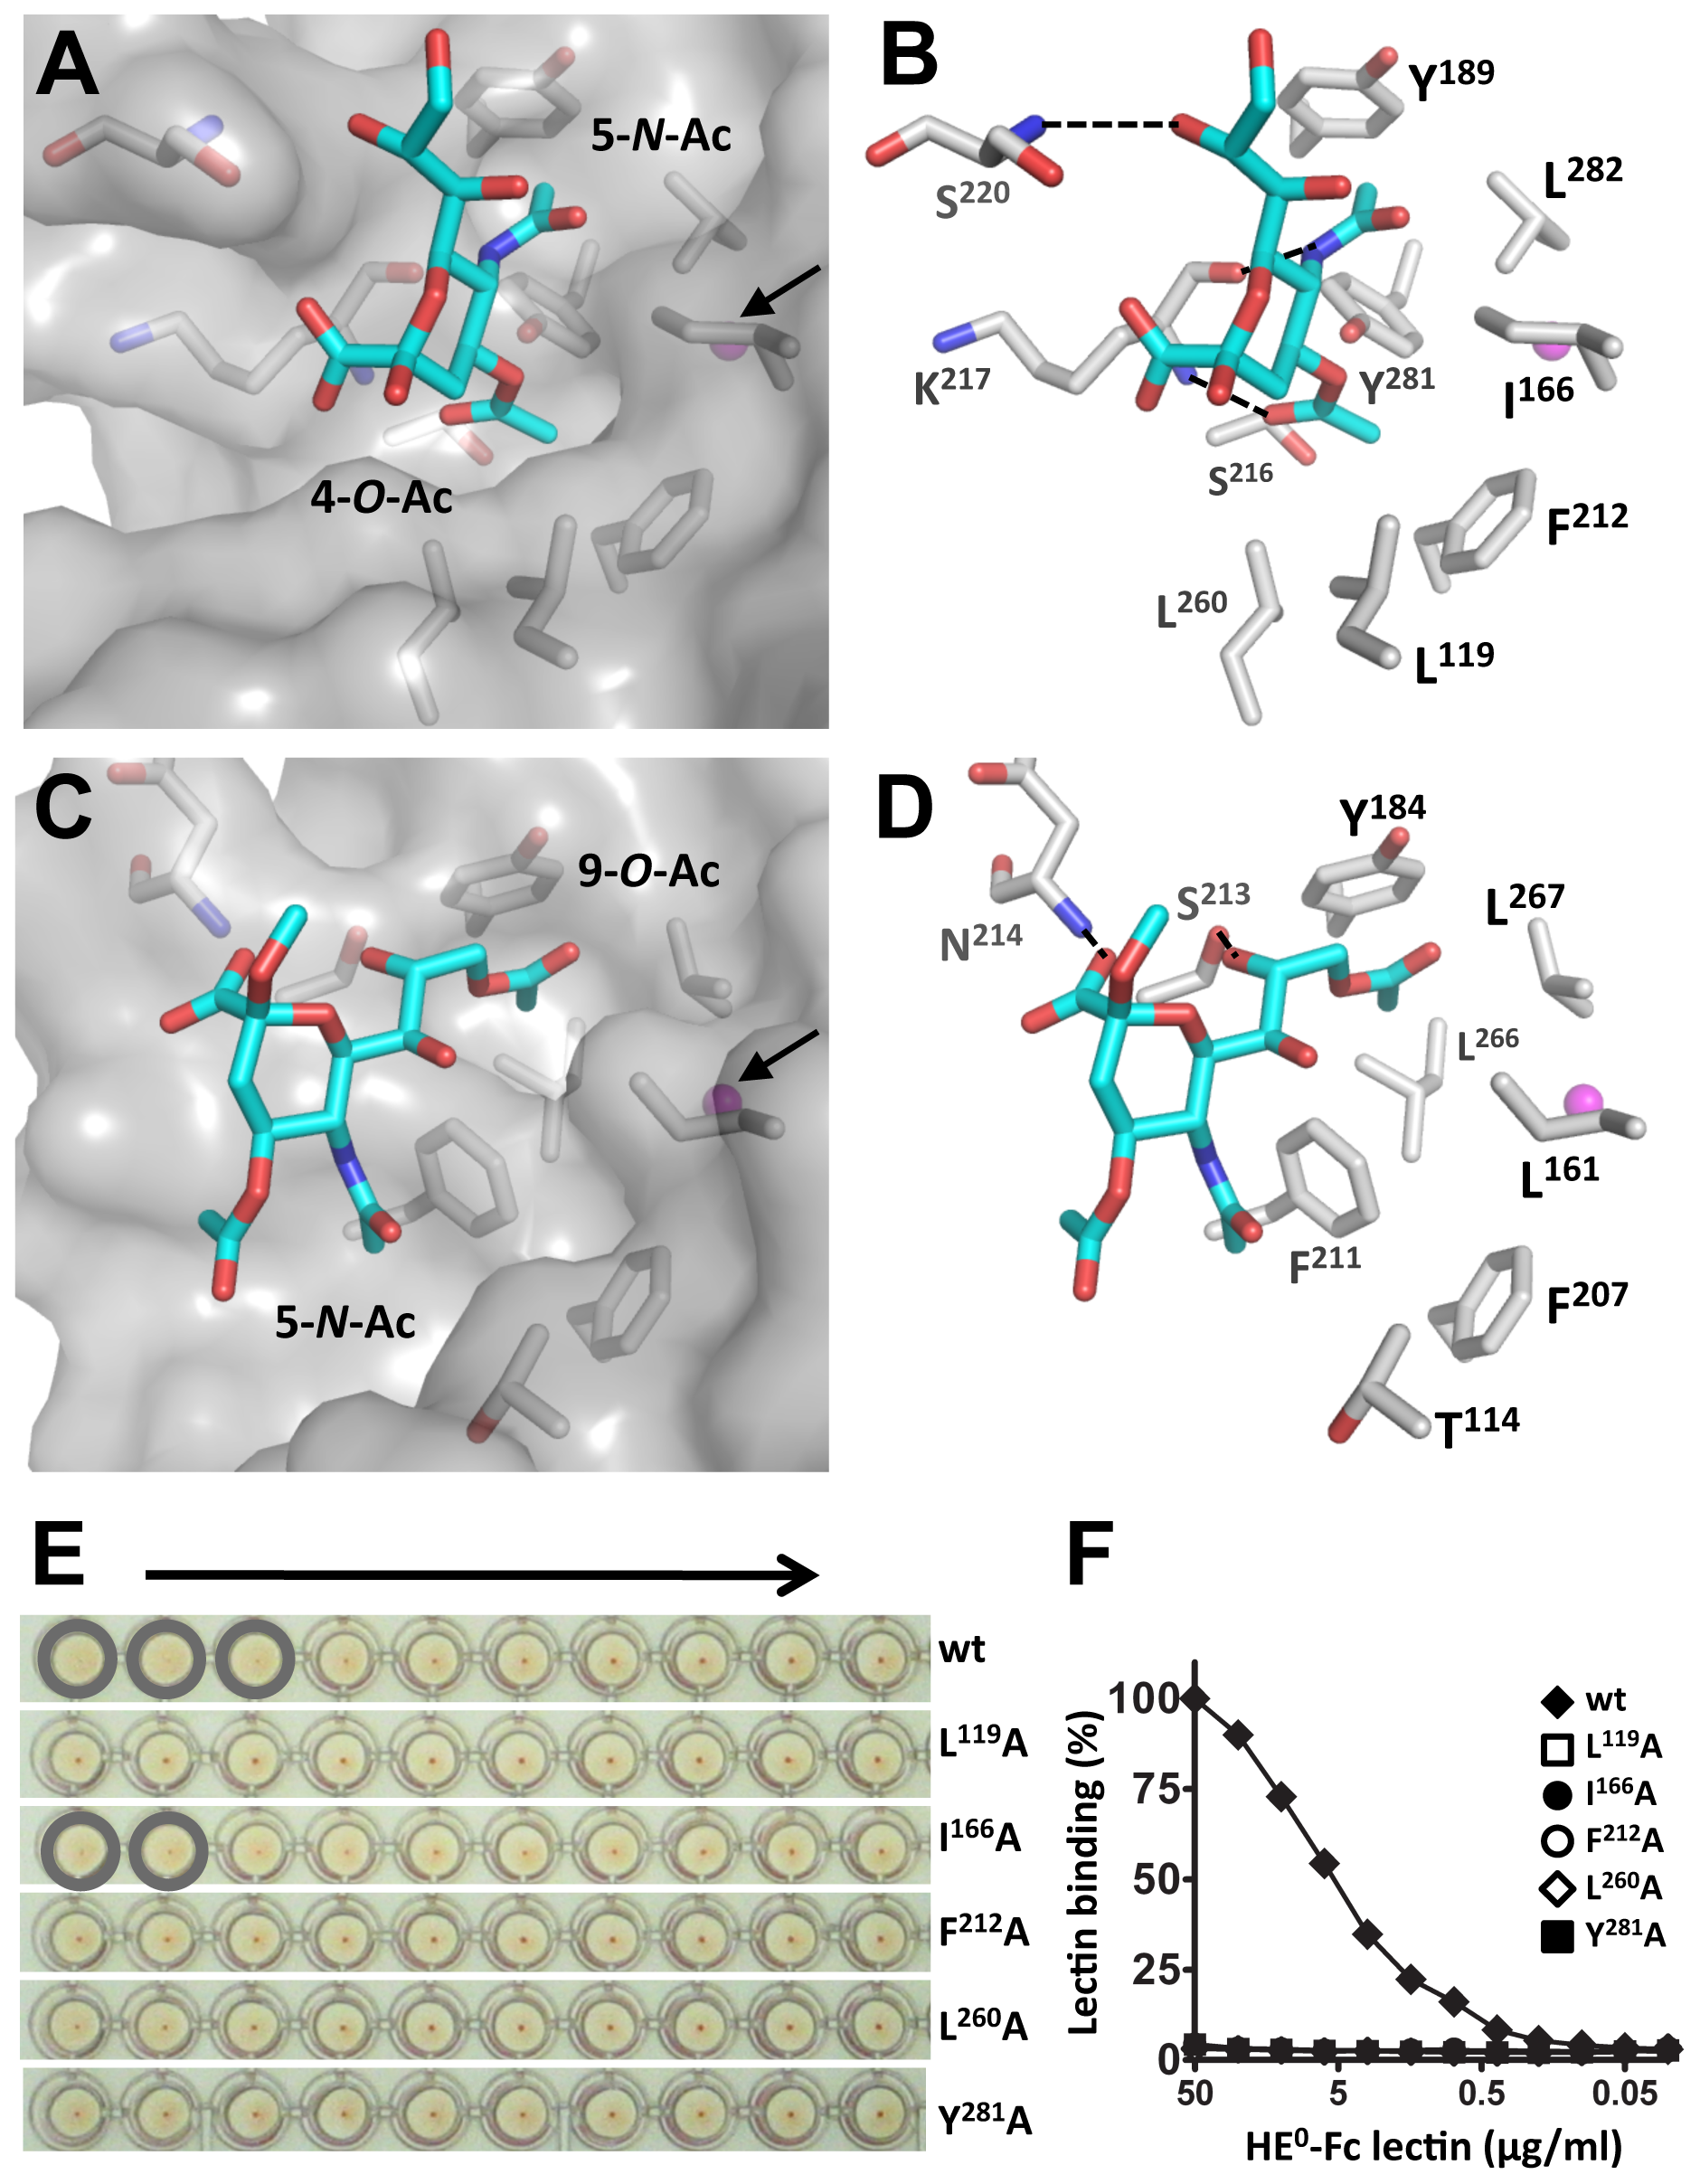 MHV<i>-S</i> HE has a unique receptor-binding site that binds specifically 4-<i>O</i>-acetylated sialic acid.